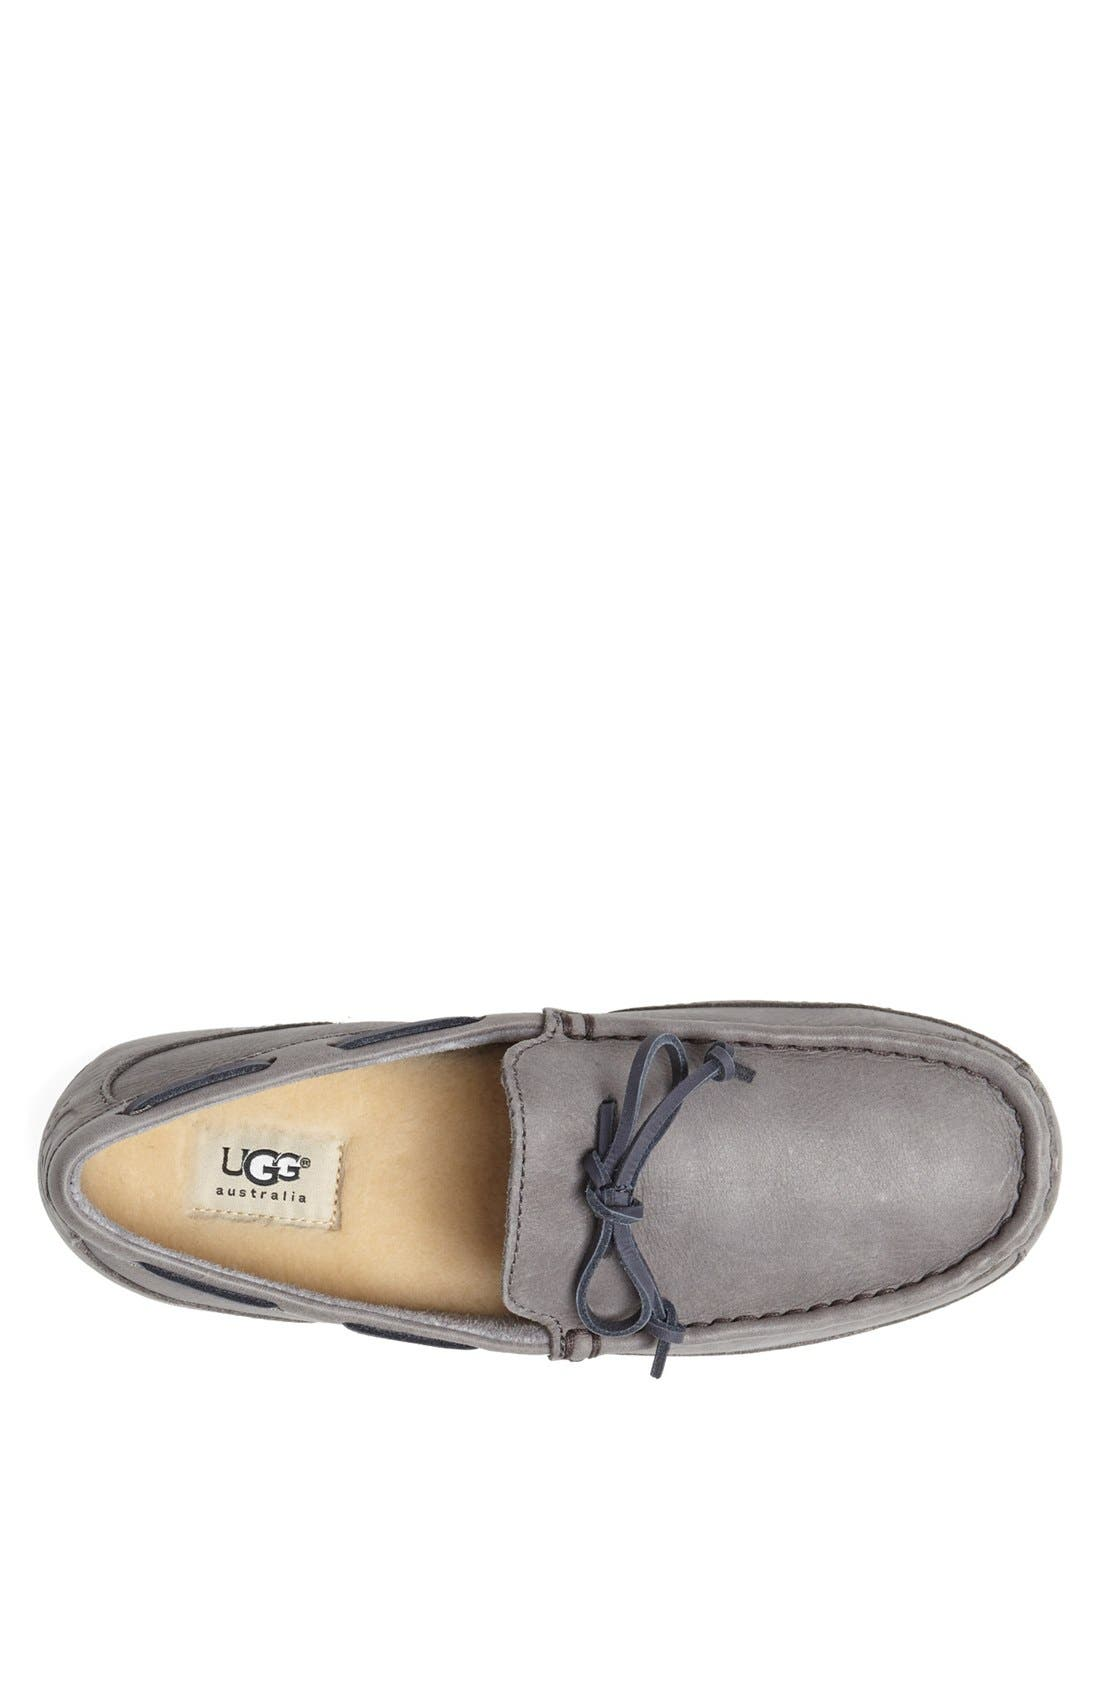 'Chester' Driving Loafer,                             Alternate thumbnail 29, color,